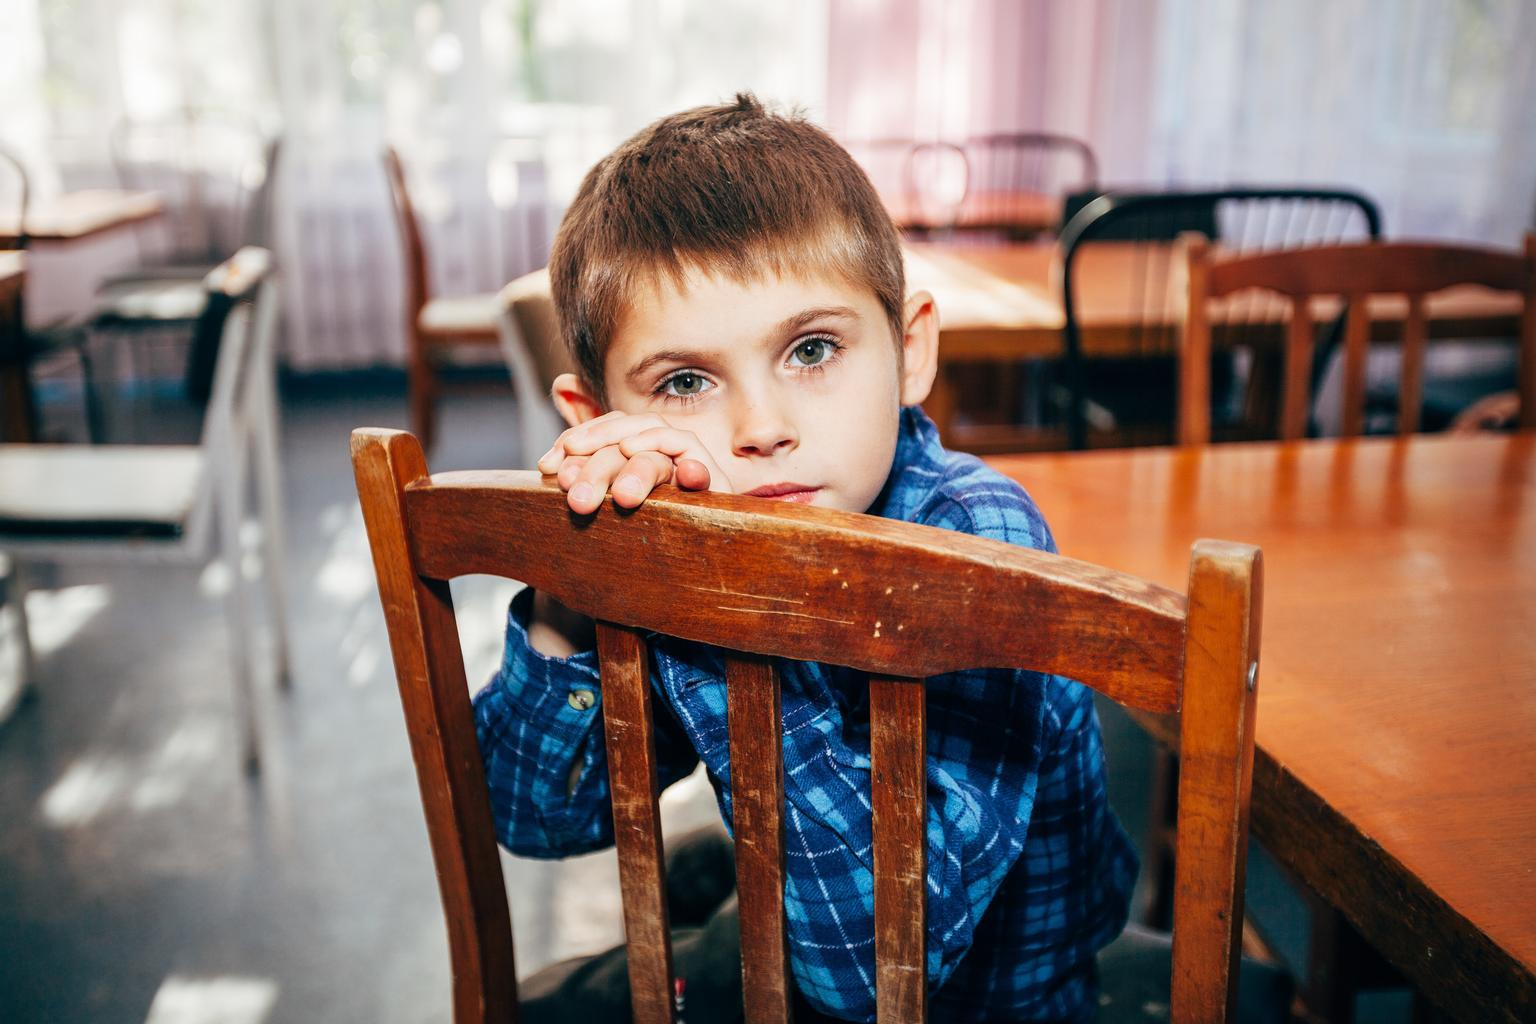 A young boy sits facing the back of a wooden chair with his hands resting on the top and his cheek resting on his hands. He is wearing a blue shirt. The room he is in has many tables and chairs, all mismatched.